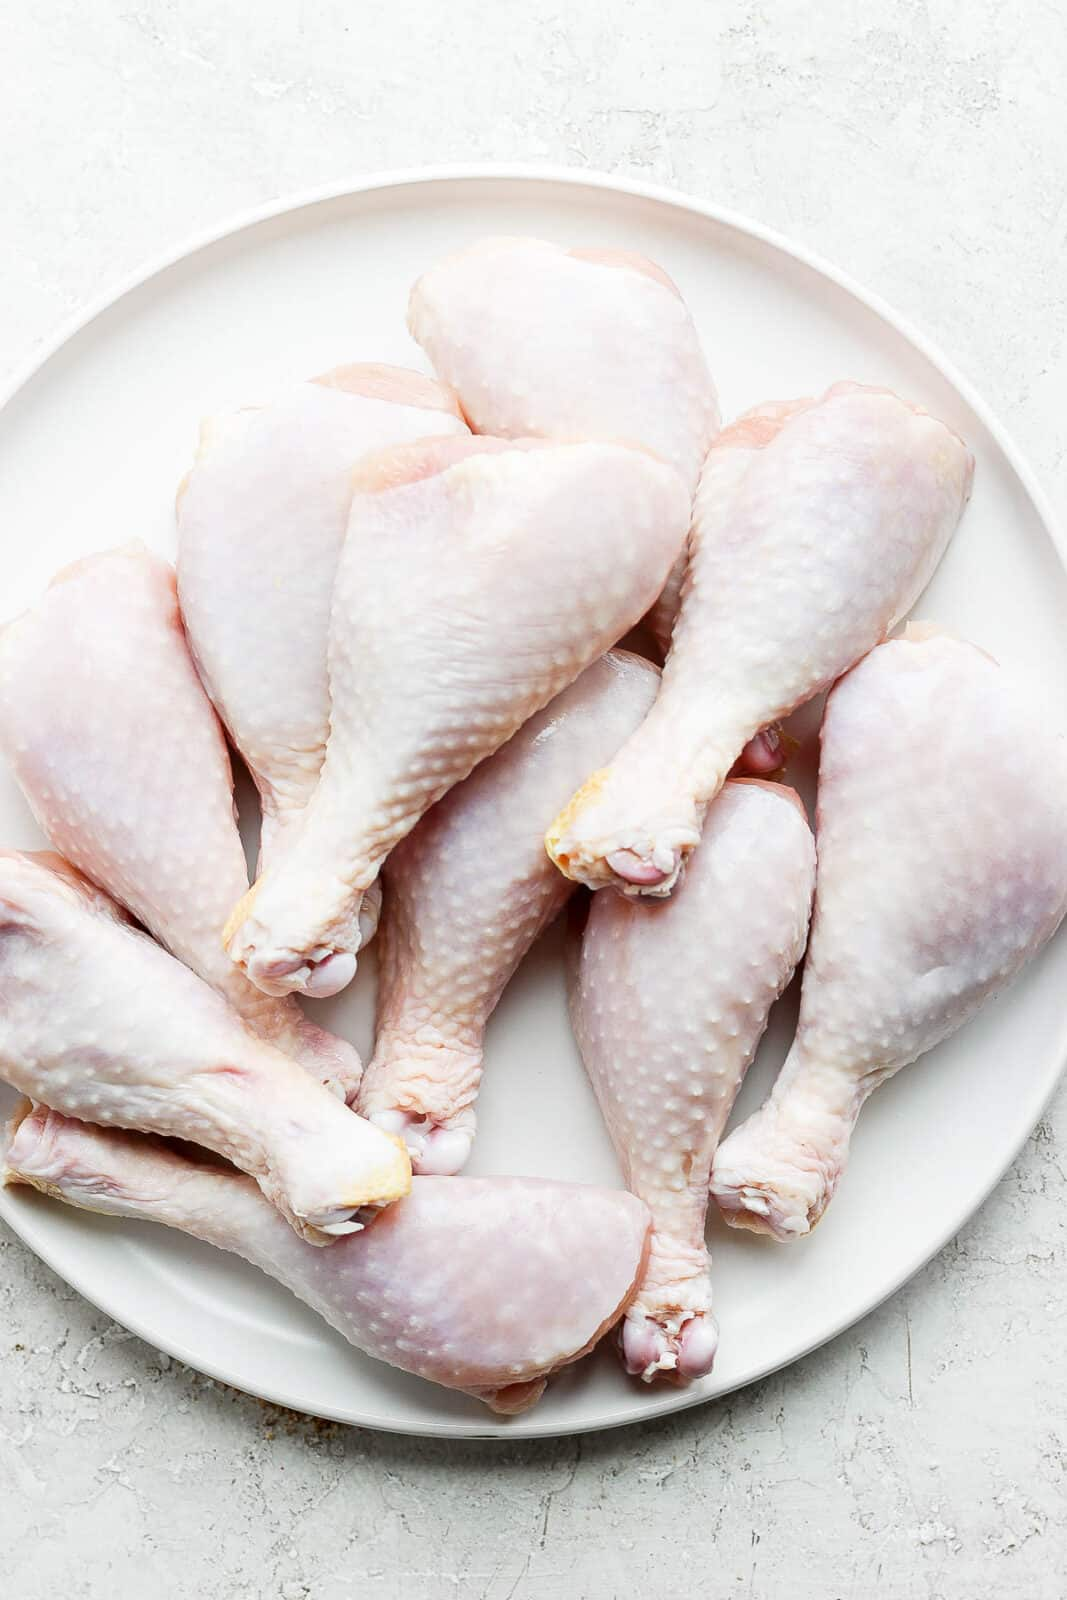 A plate of raw chicken legs.